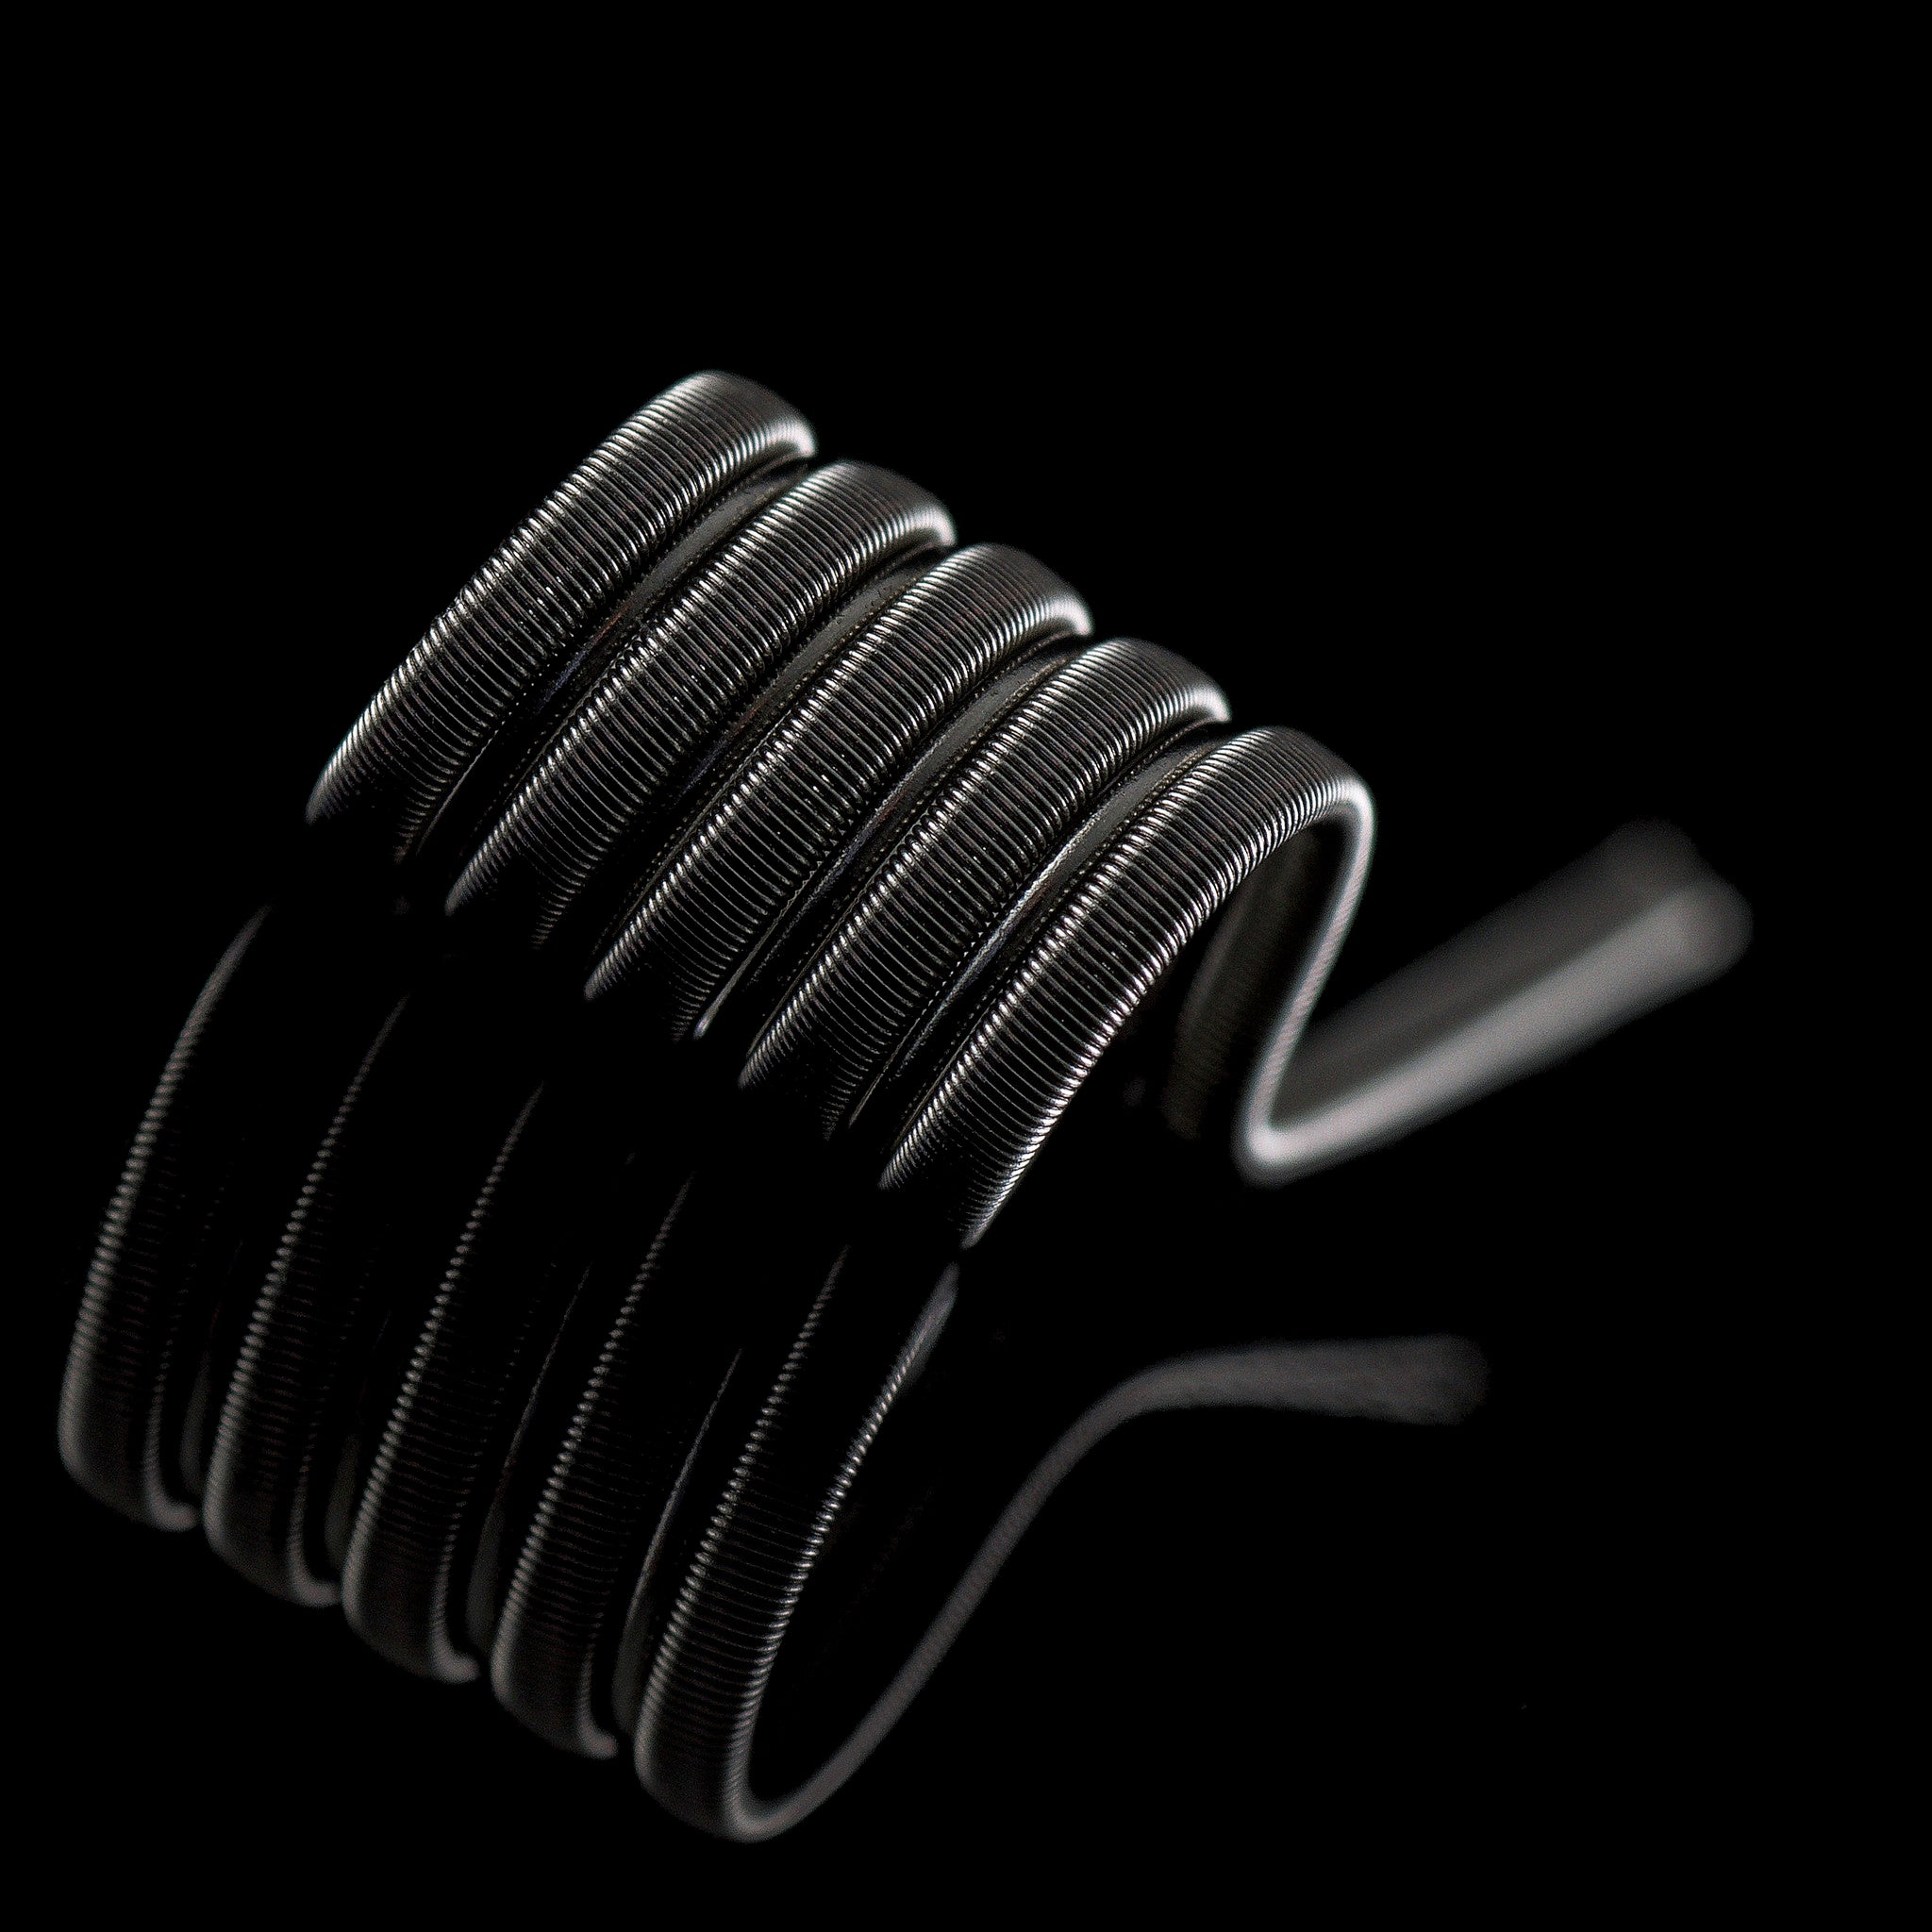 Staged Fused Clapton - OHMLAND COILS